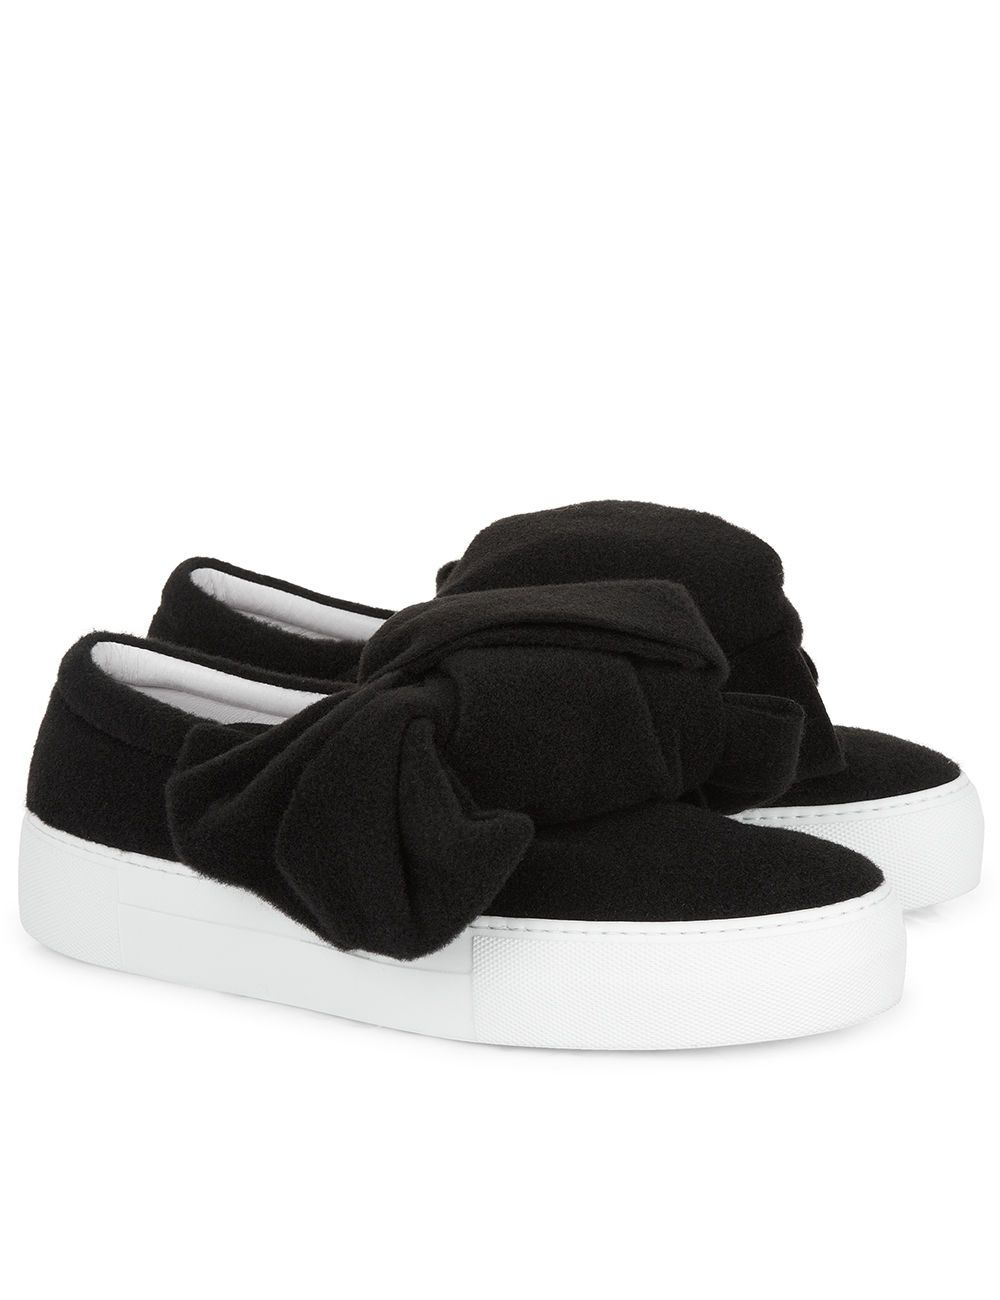 Discount With Paypal Bow shearling and leather slip-on sneakers Joshua Sanders Professional Sale Online JMngORXI5